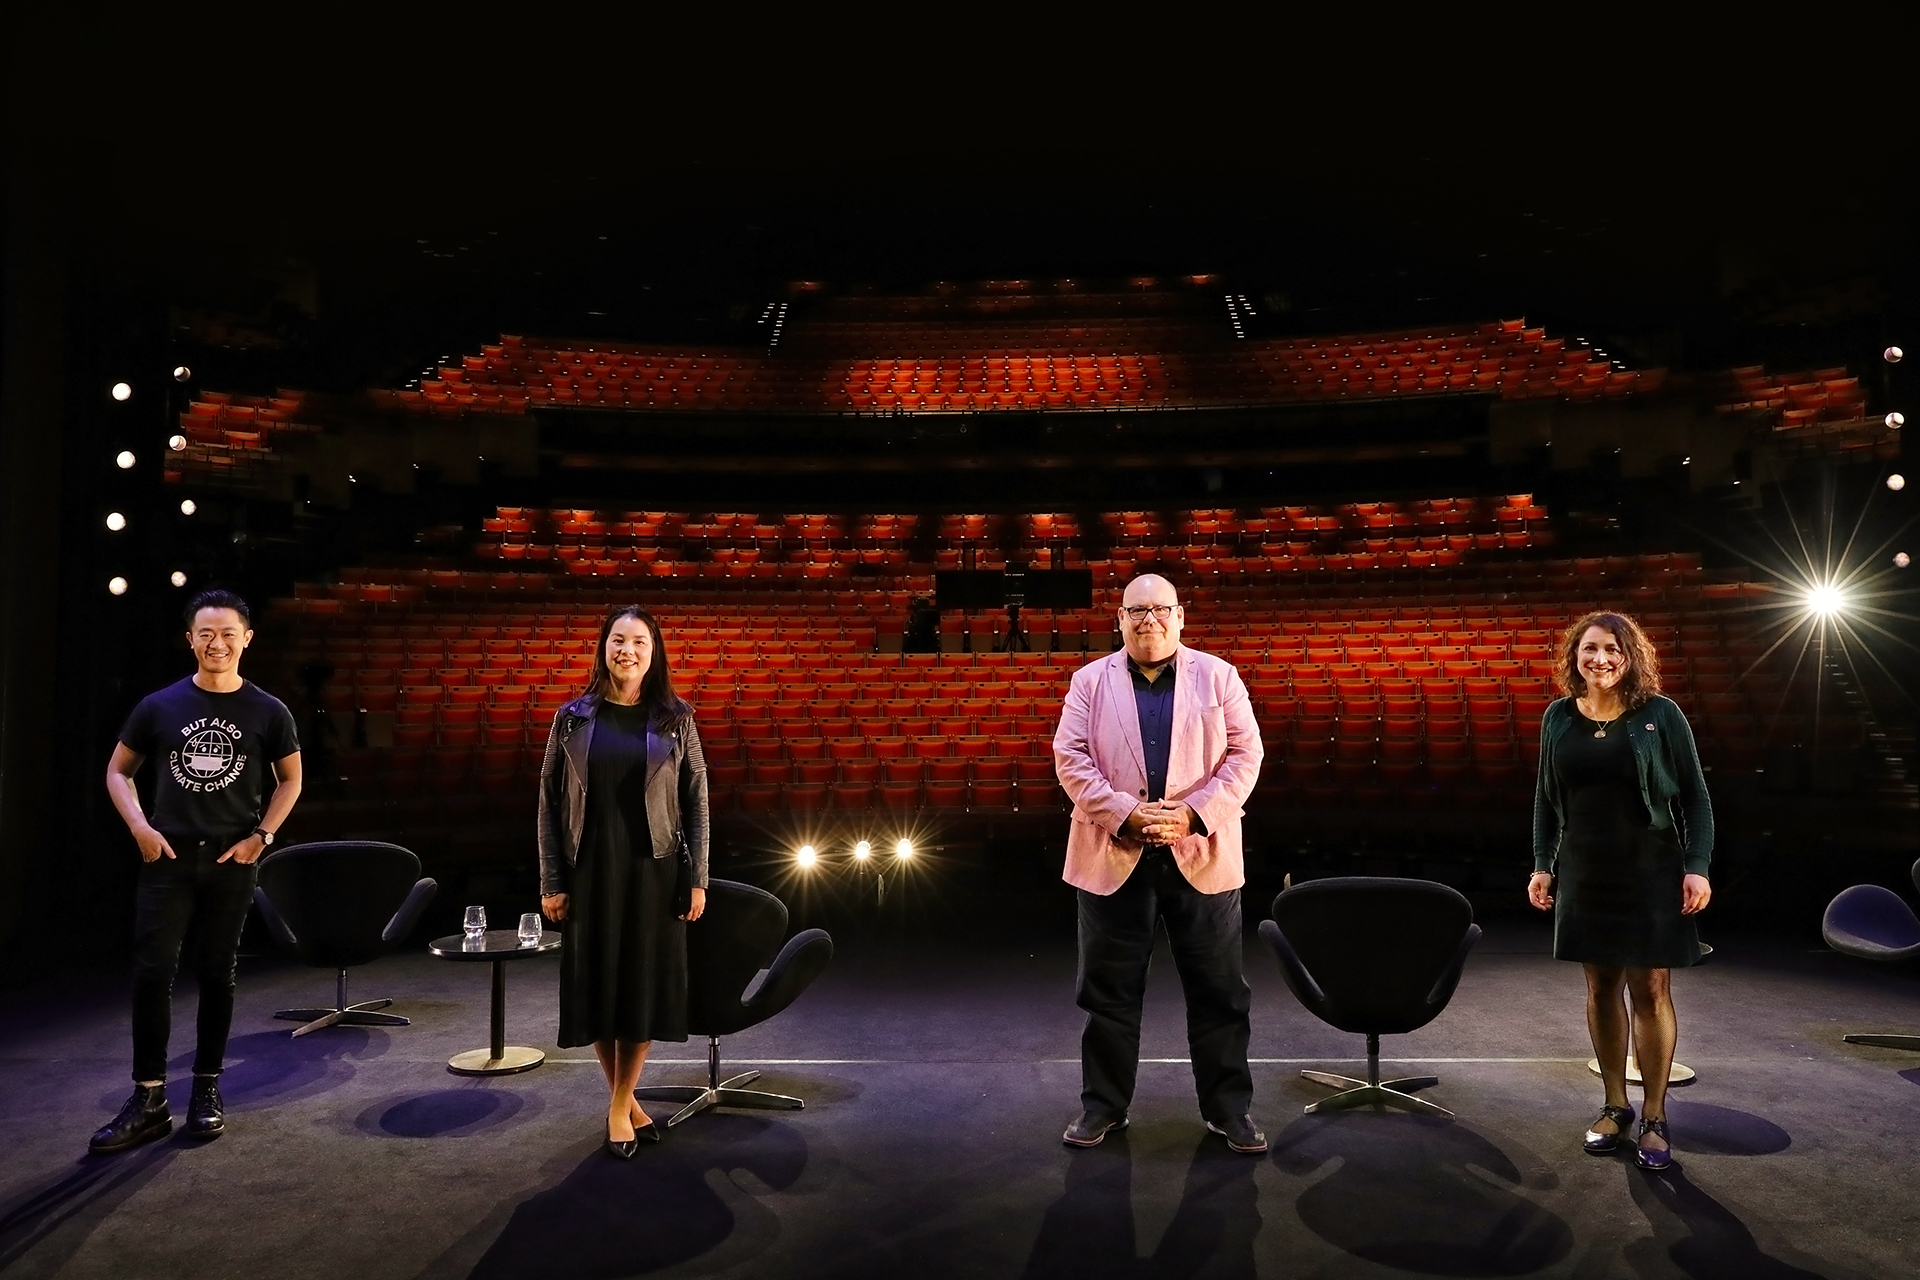 Benjamin Law, Mikala Tai, Peter White and Lena Nahlous standing on stage at the Sydney Opera House